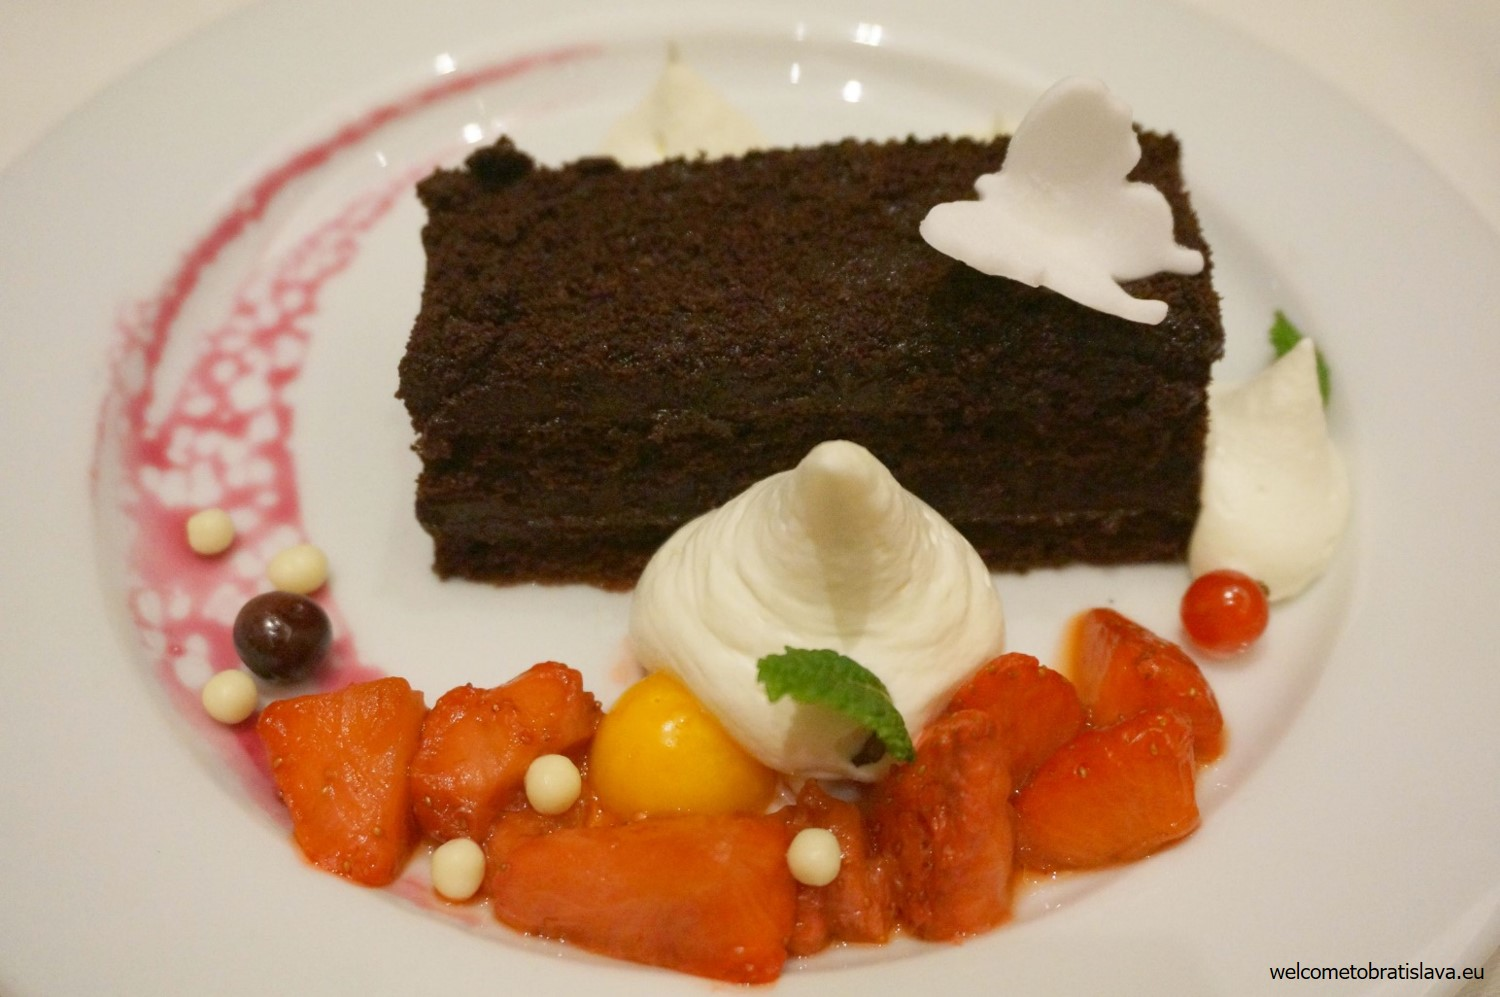 Carlton cake served with vanilla whipped cream, ambéed fruit applesauce and marinated cranberries